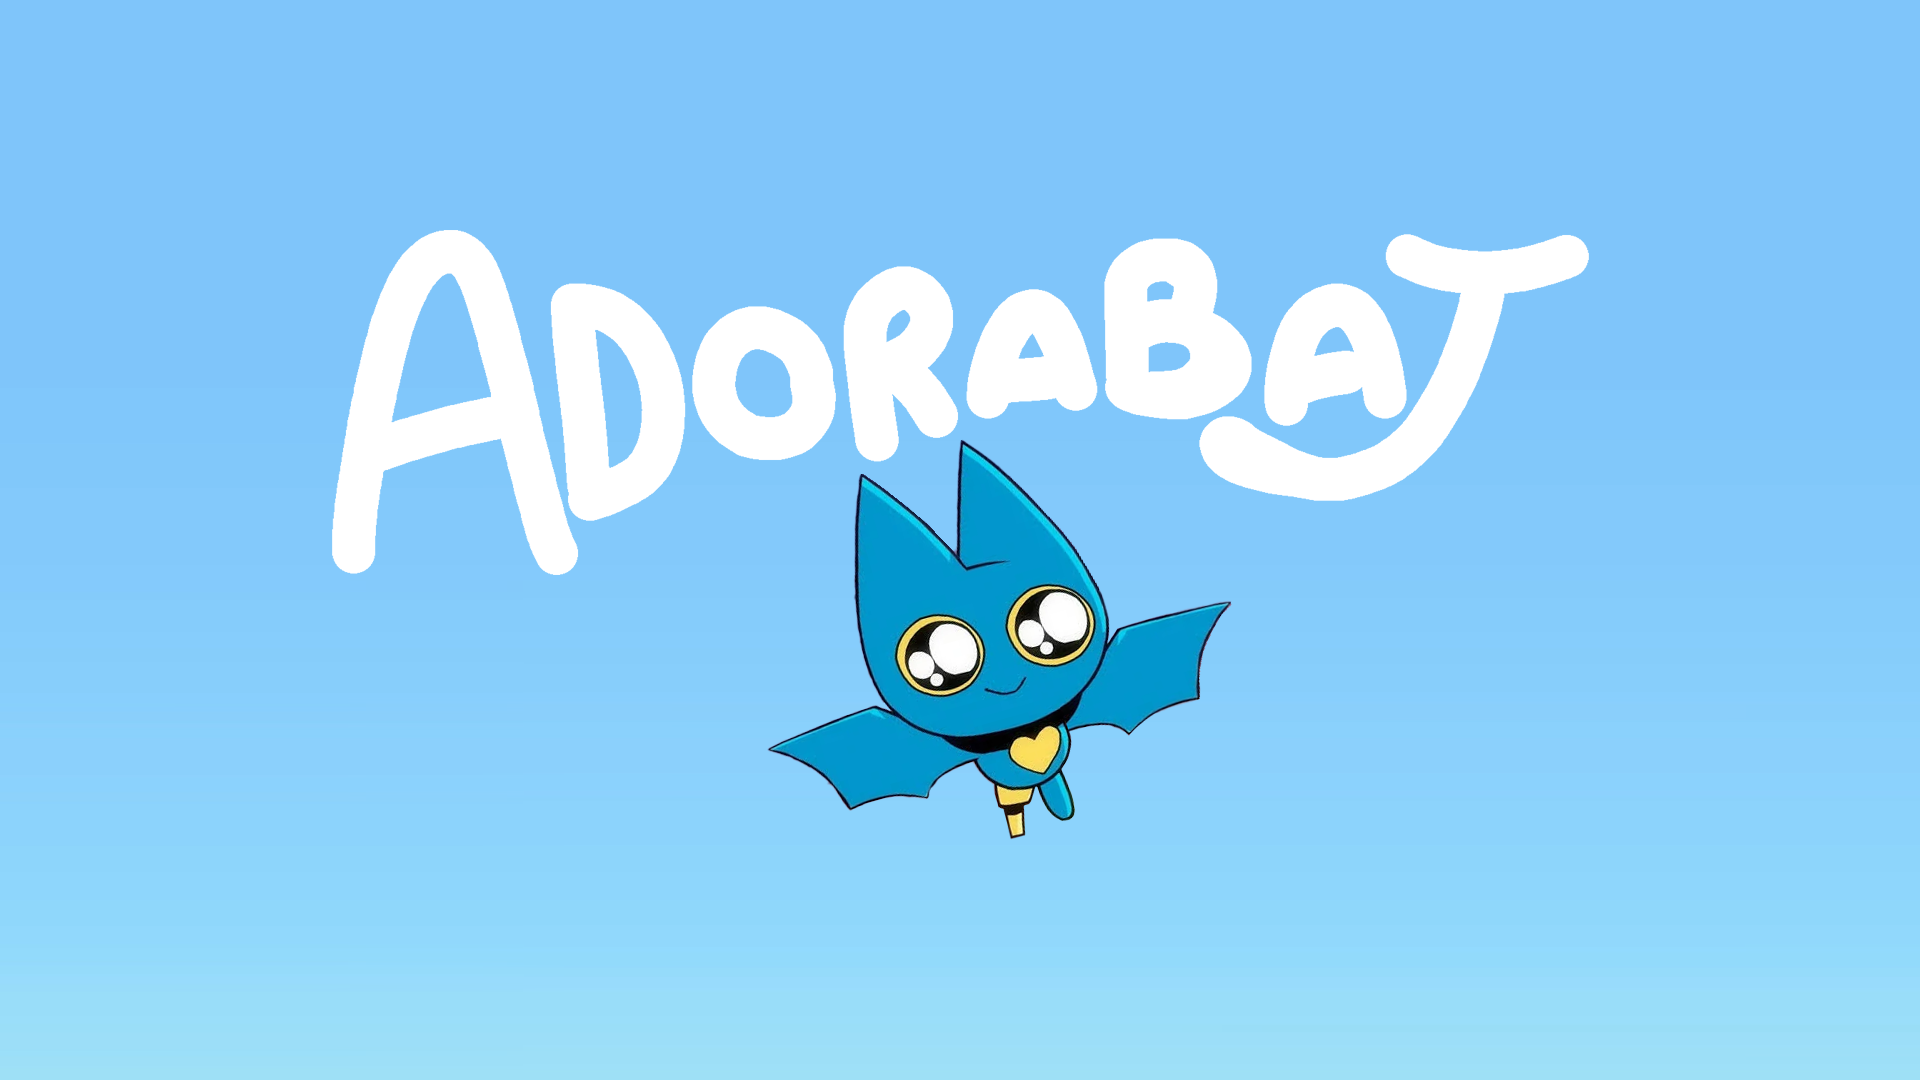 Bluey Inspired Adorabat Title Card By Cnconfessions On Deviantart I learn how to draw adorabat in my 3ds. bluey inspired adorabat title card by